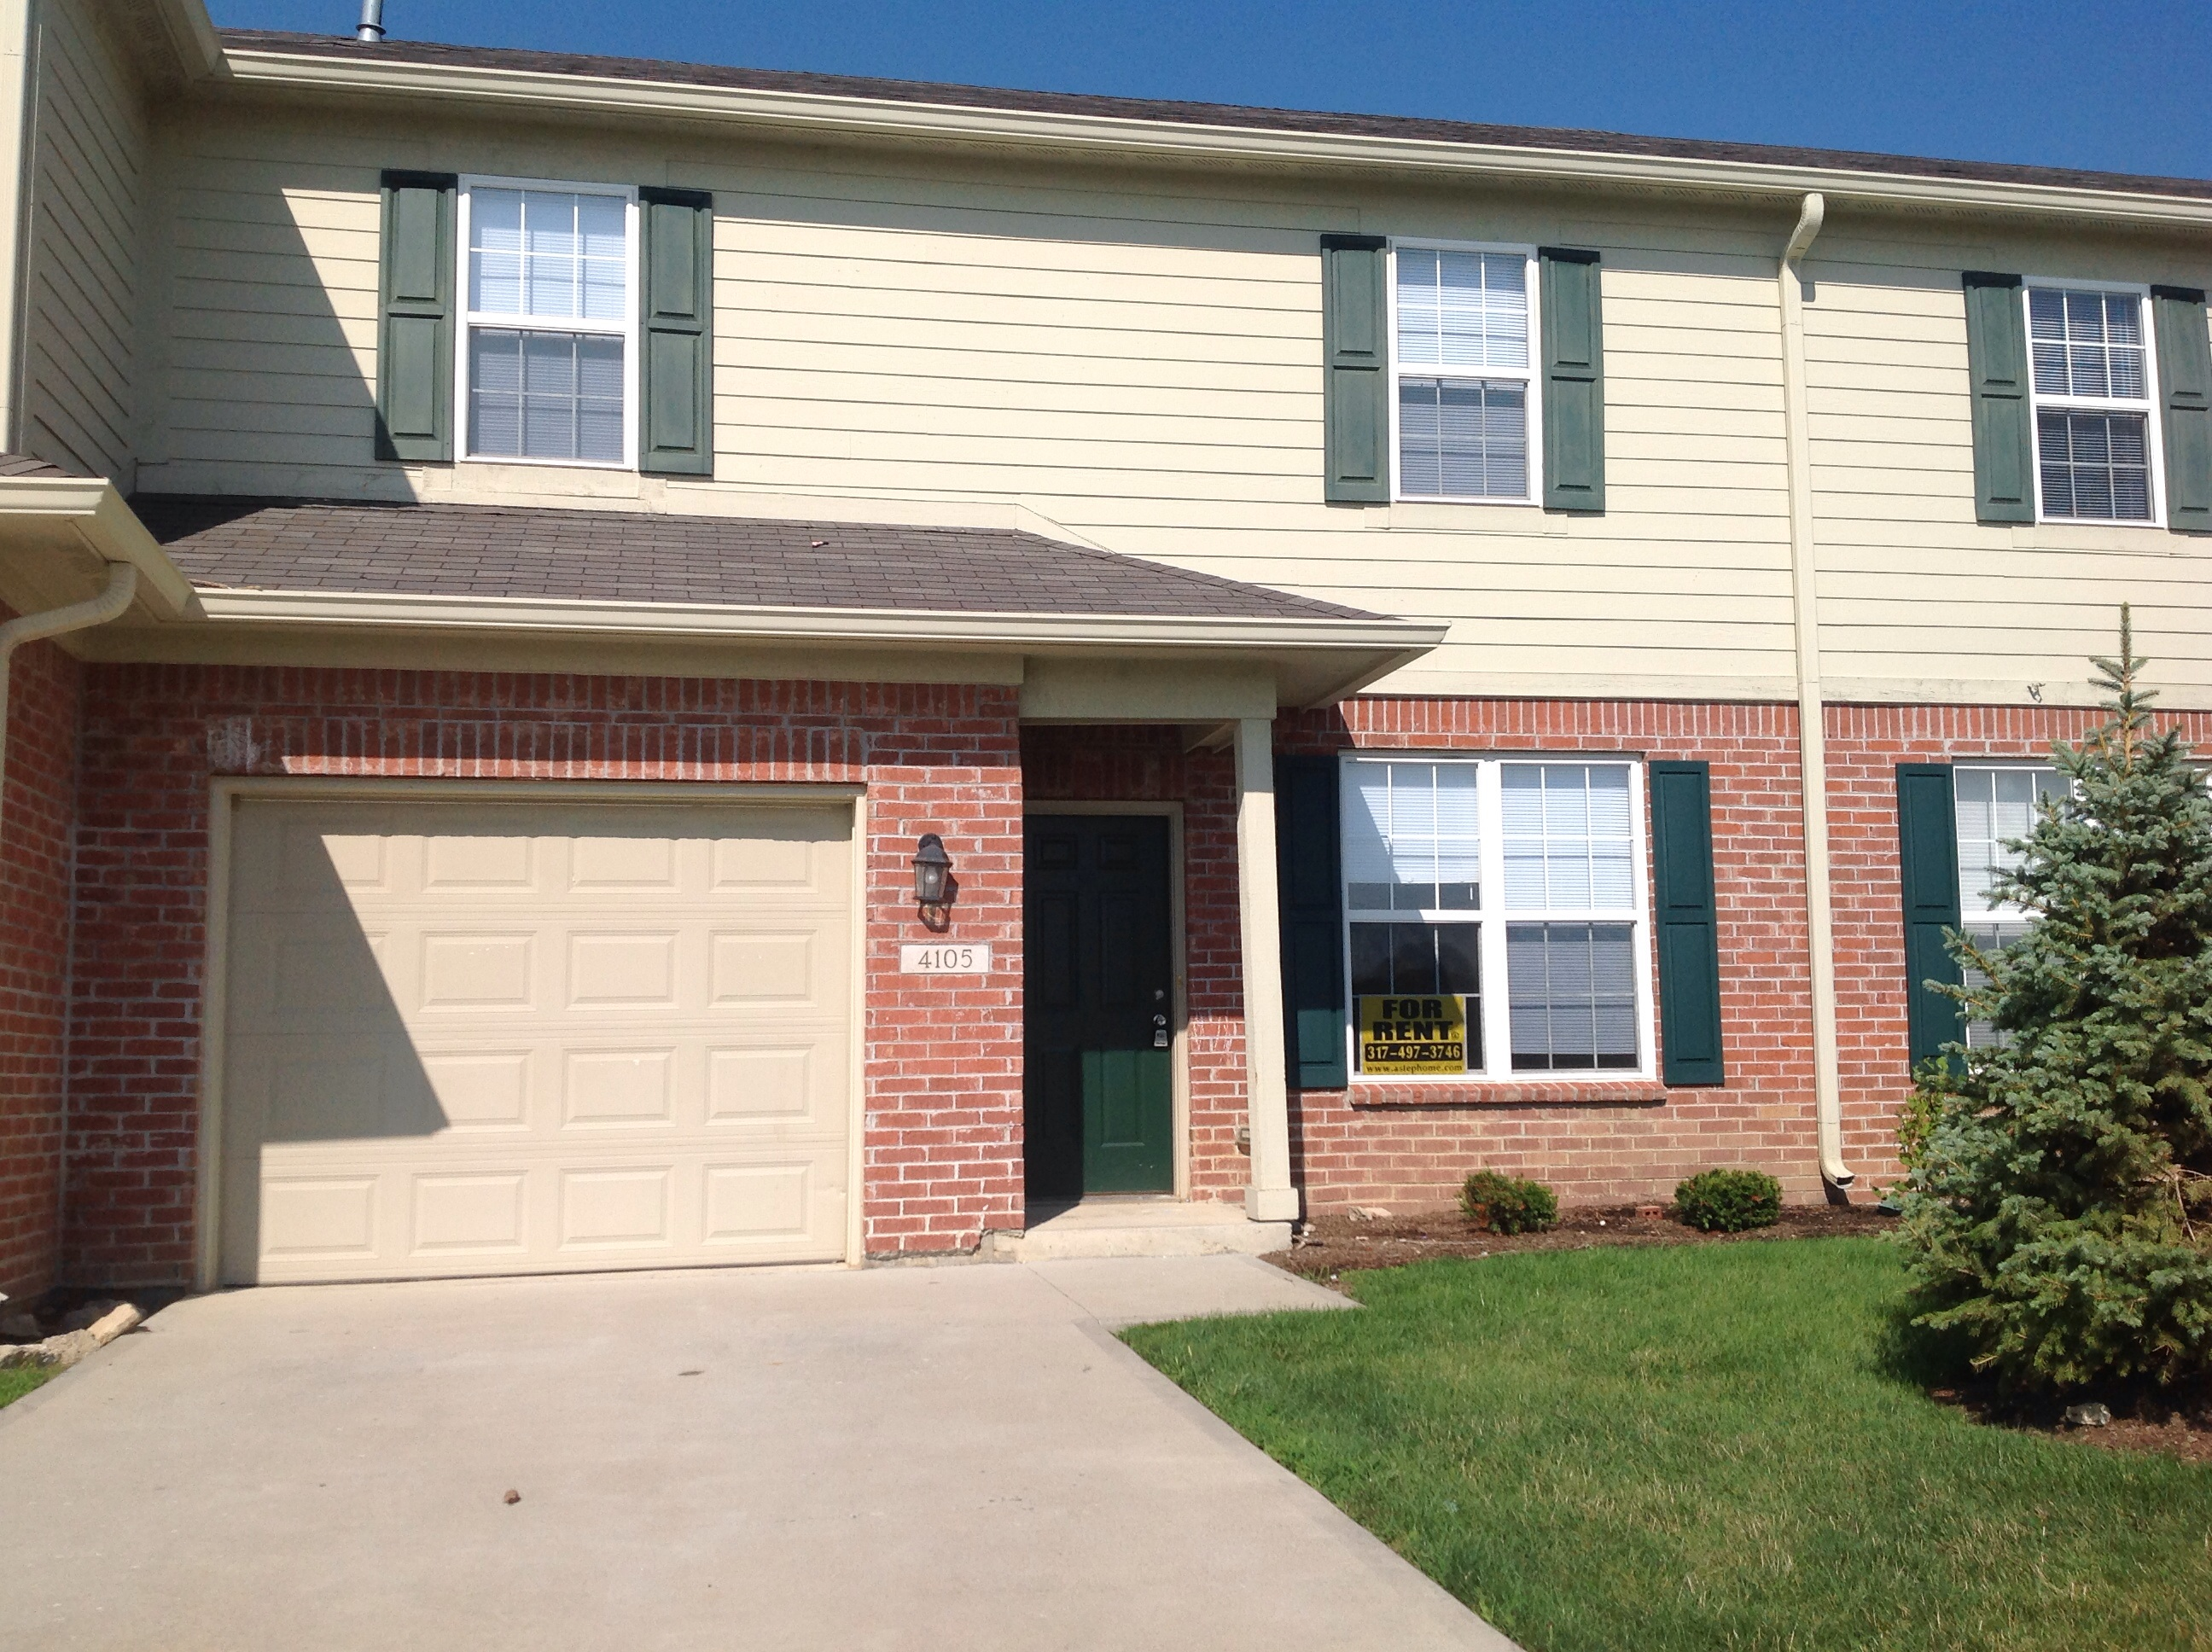 Condo for Rent in Noblesville